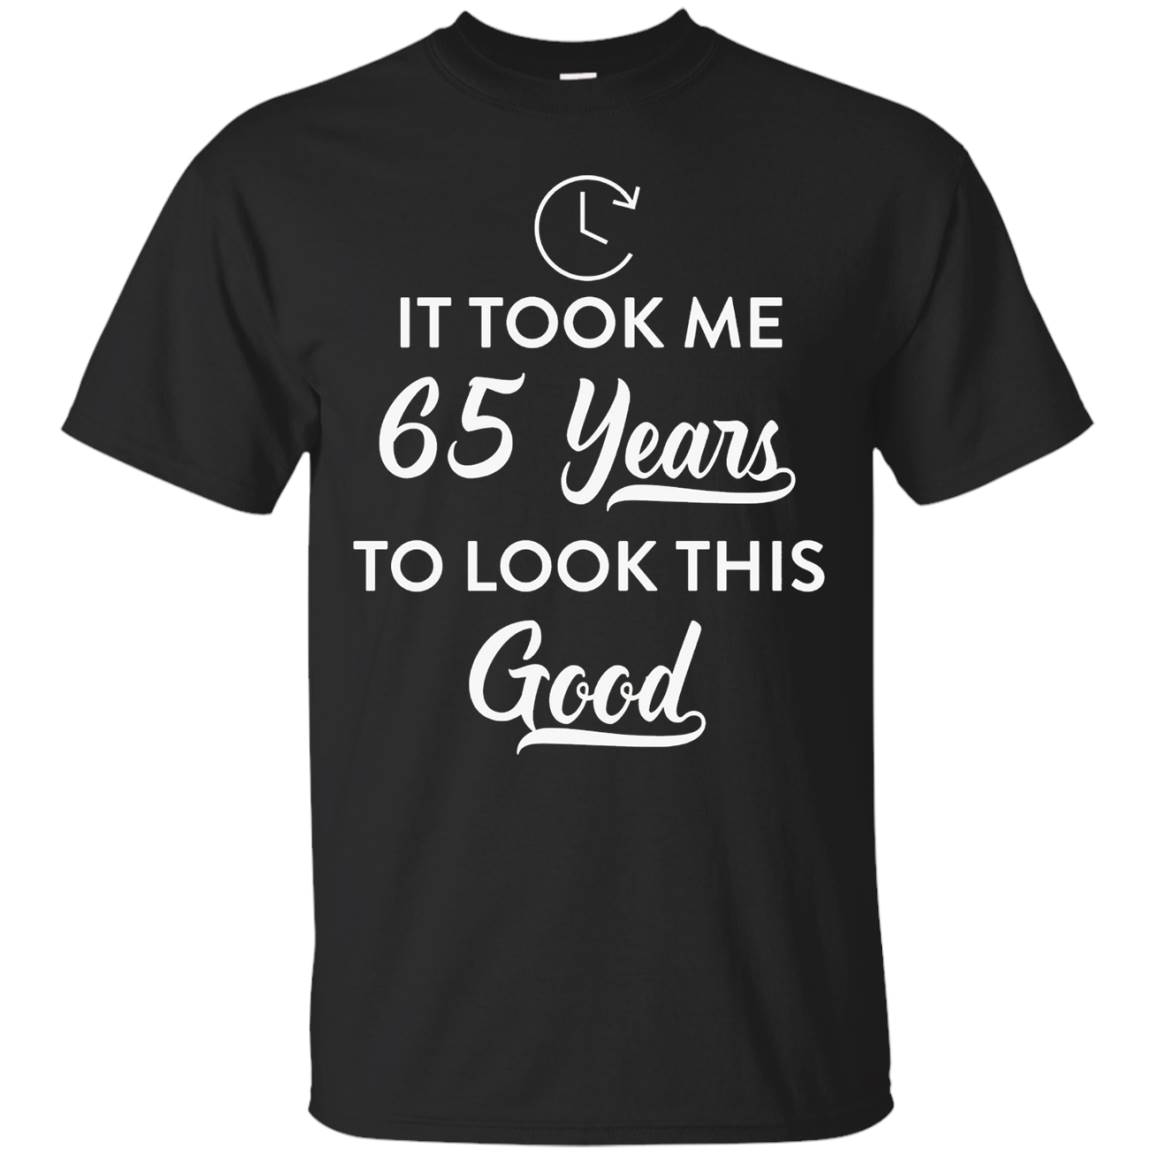 It Took Me 65 Years To Look This Good Funny 65th Birthday Party Gift T-Shirt